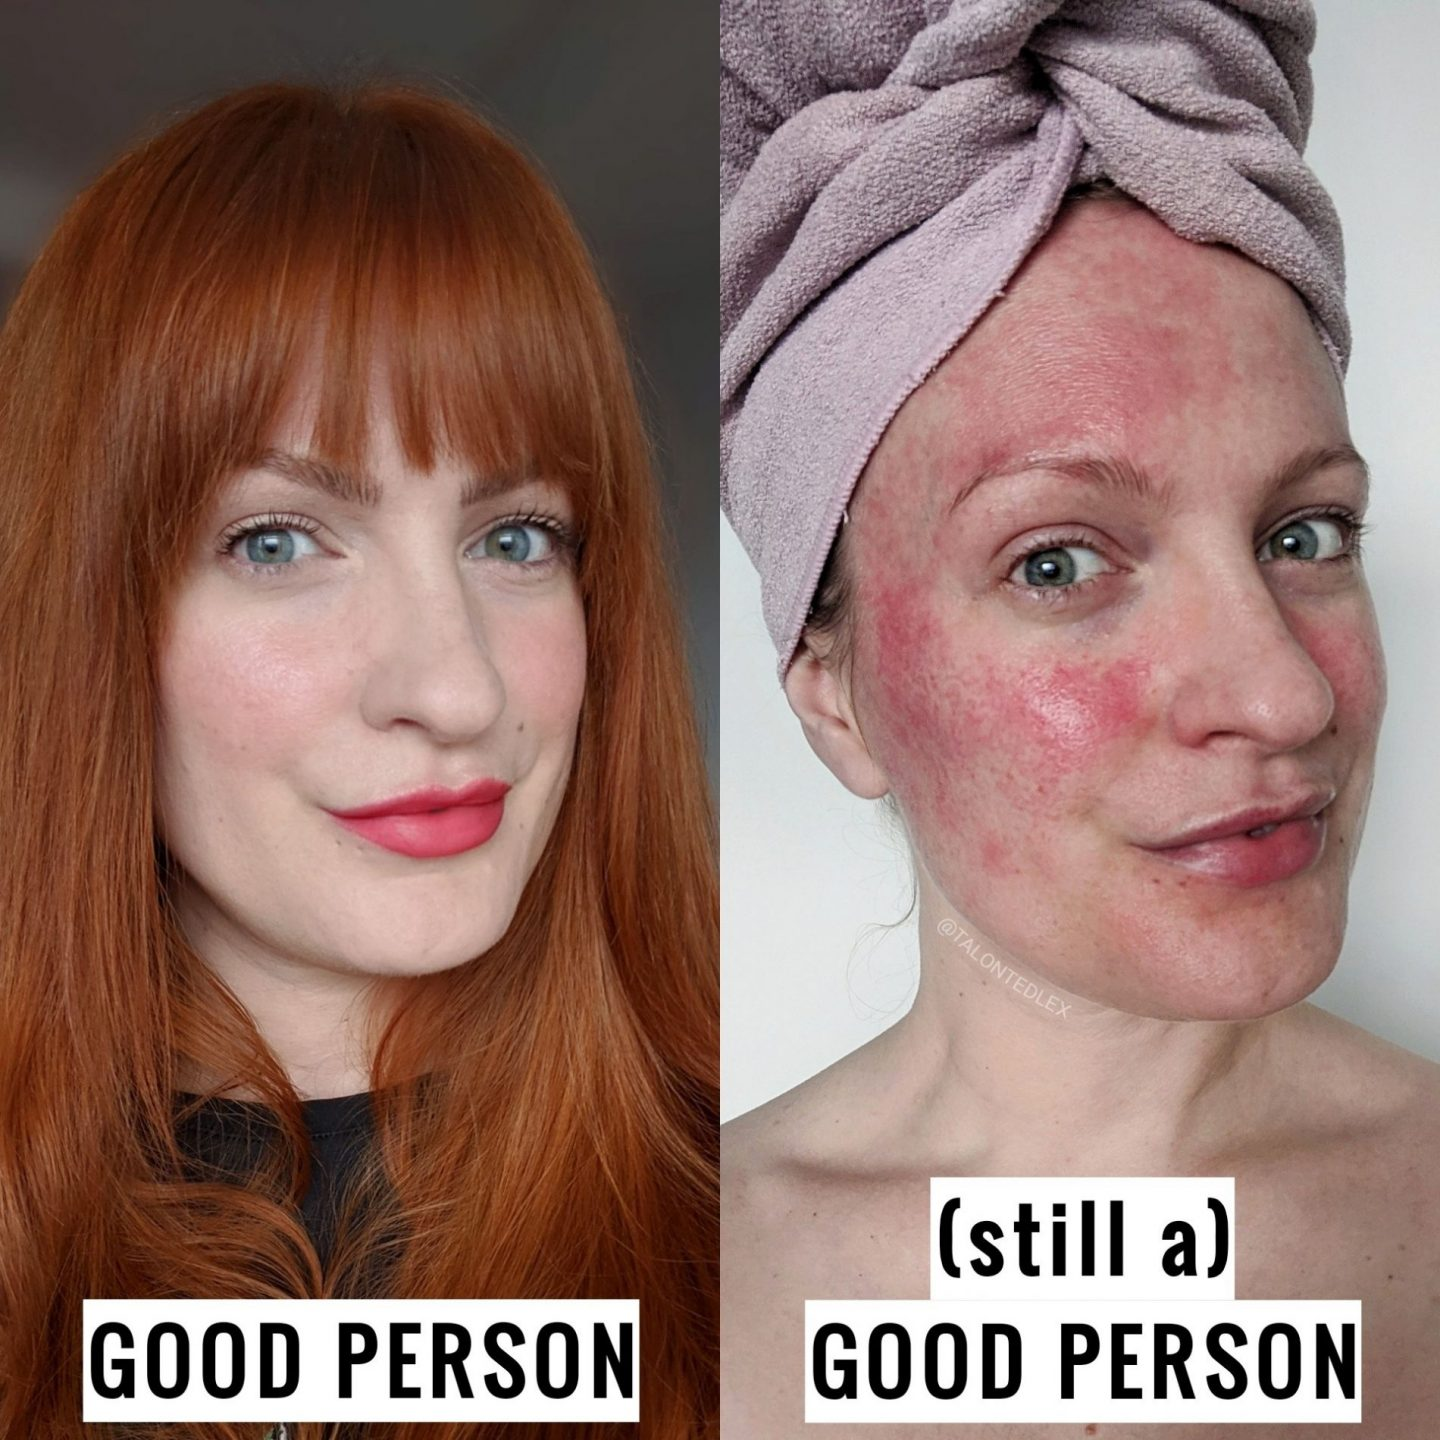 Why good skin doesn't make you a good person (and vice versa!) Skin positivity, body positivity, and why we need to be a little bit kinder. Skincare blogger and rosacea activity, Talonted Lex shares her thoughts on the bizarre belief that good deeds are rewarded with good skin. #talontedlex #goodskin #skinpositive #skinblogger #rosaceaadvice